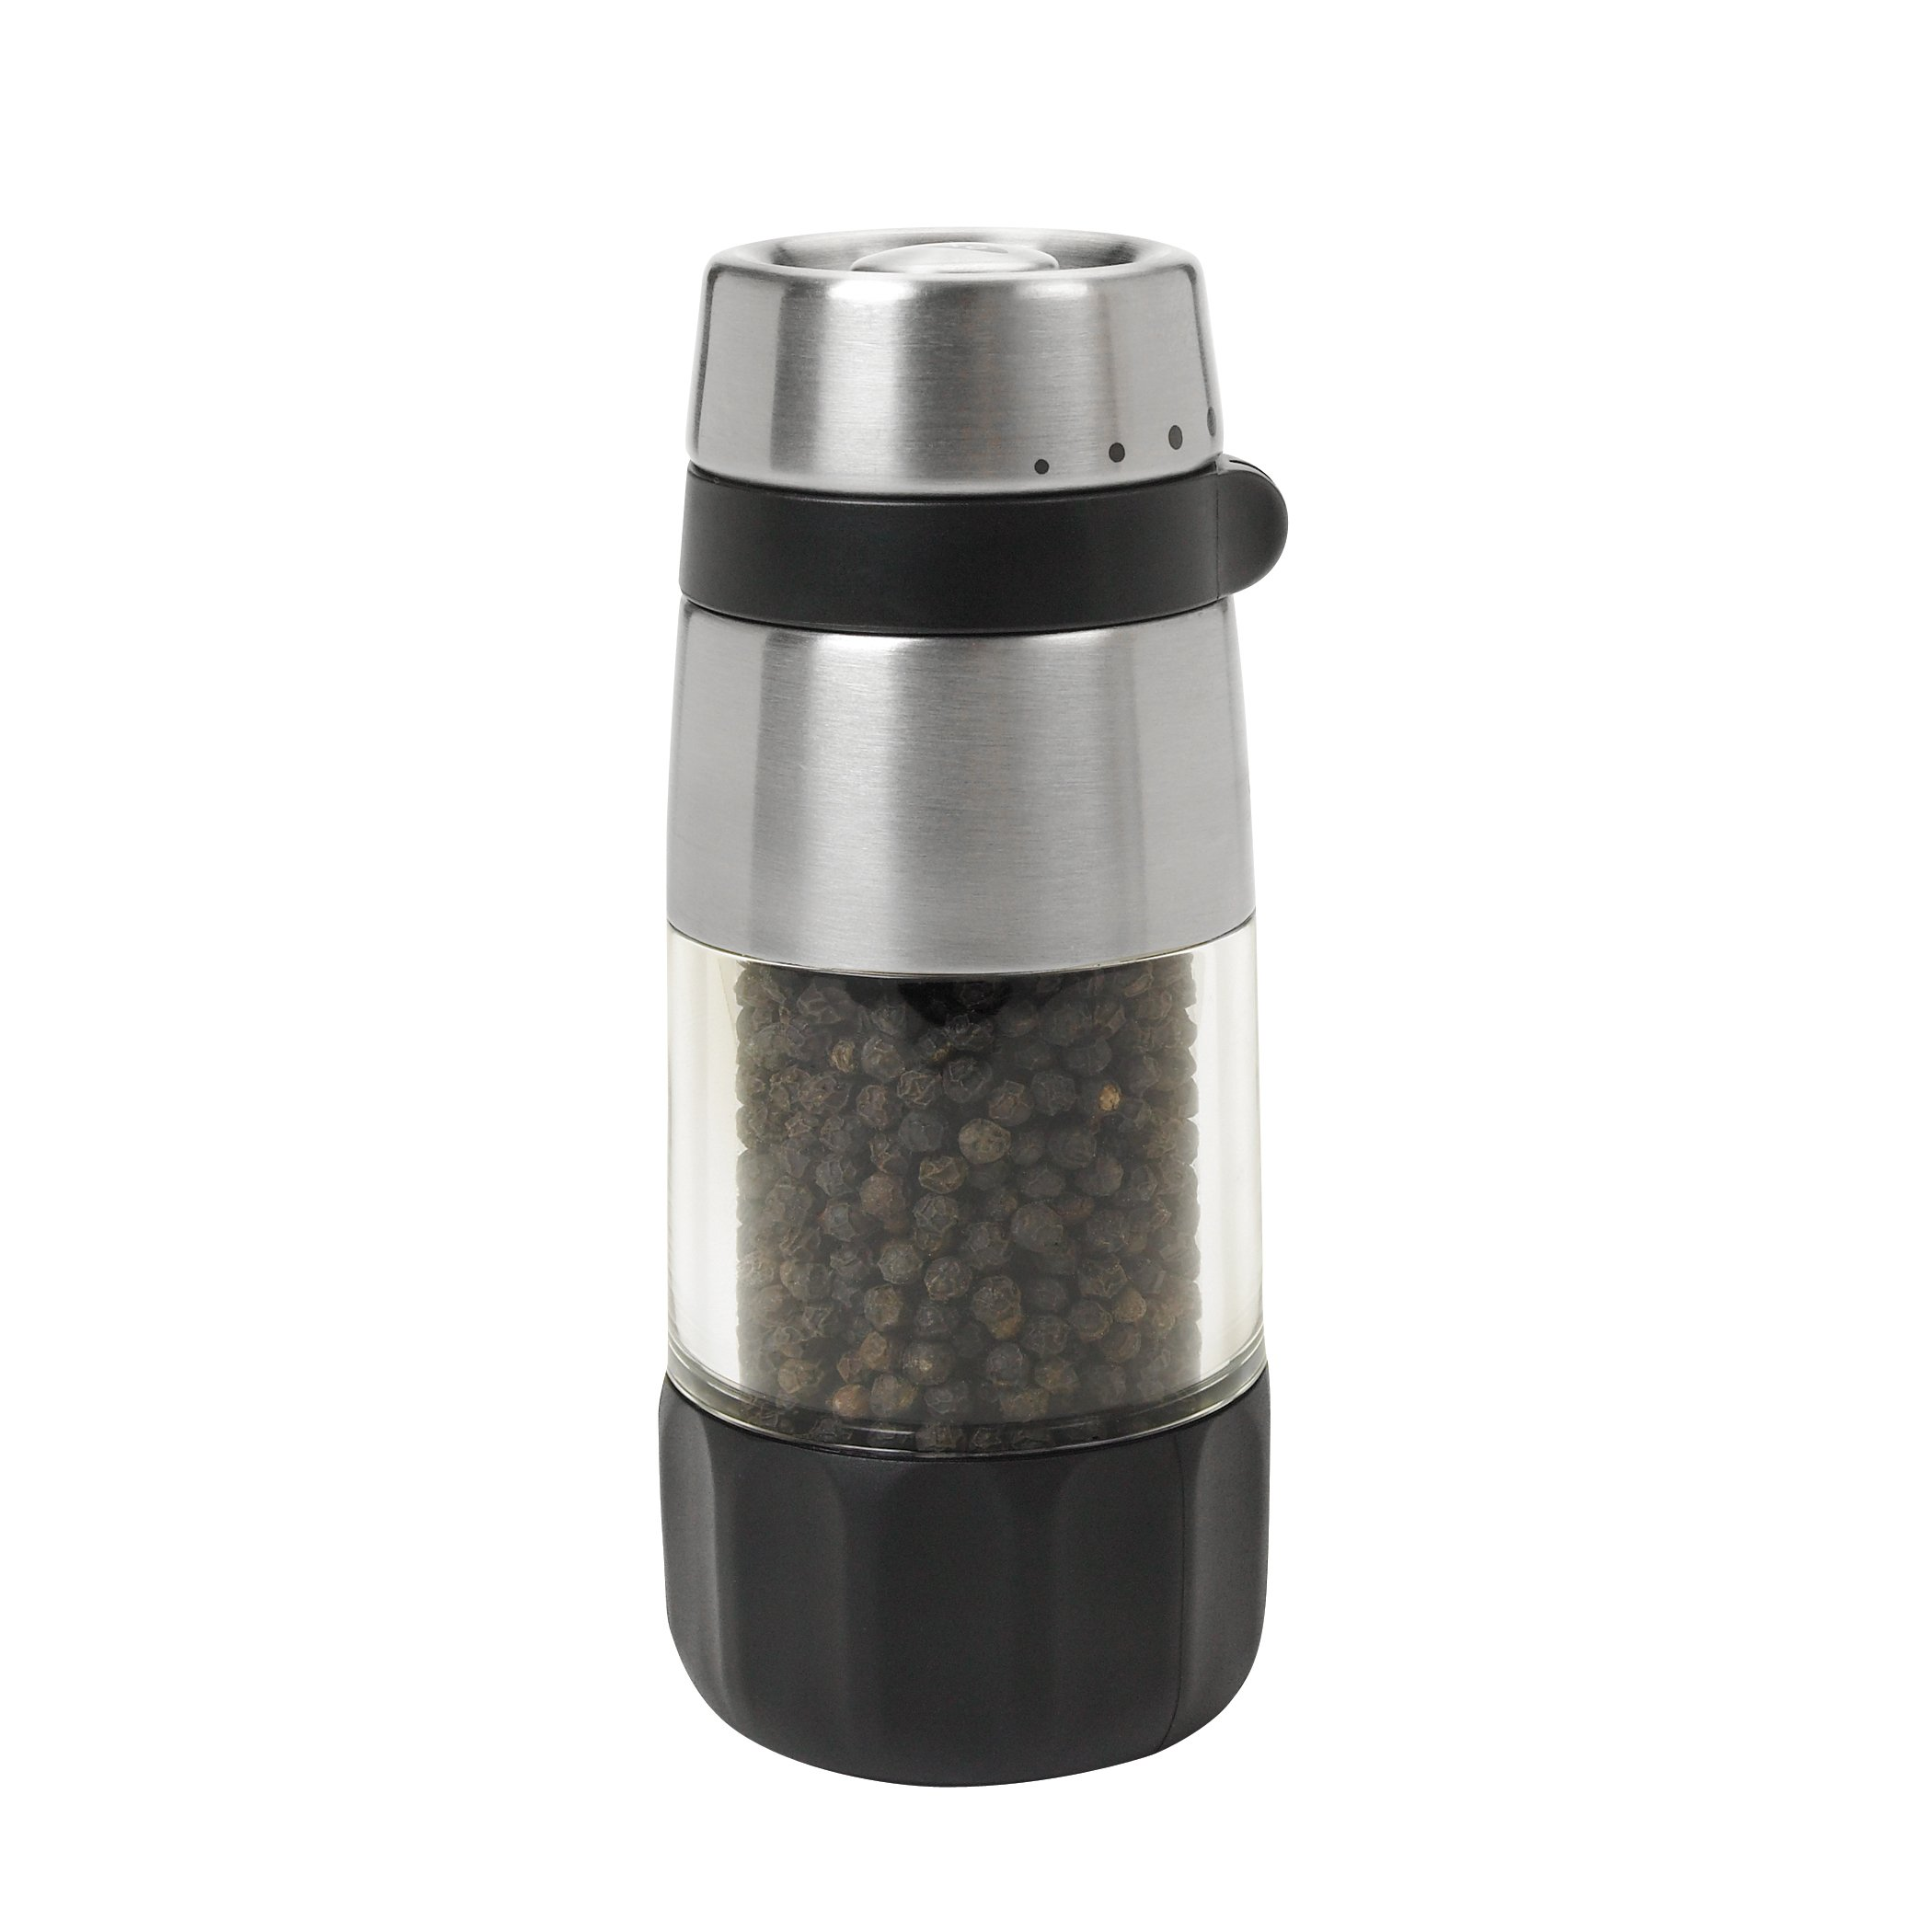 OXO Good Grips Accent Mess Free Pepper Grinder, Stainless Steel by OXO